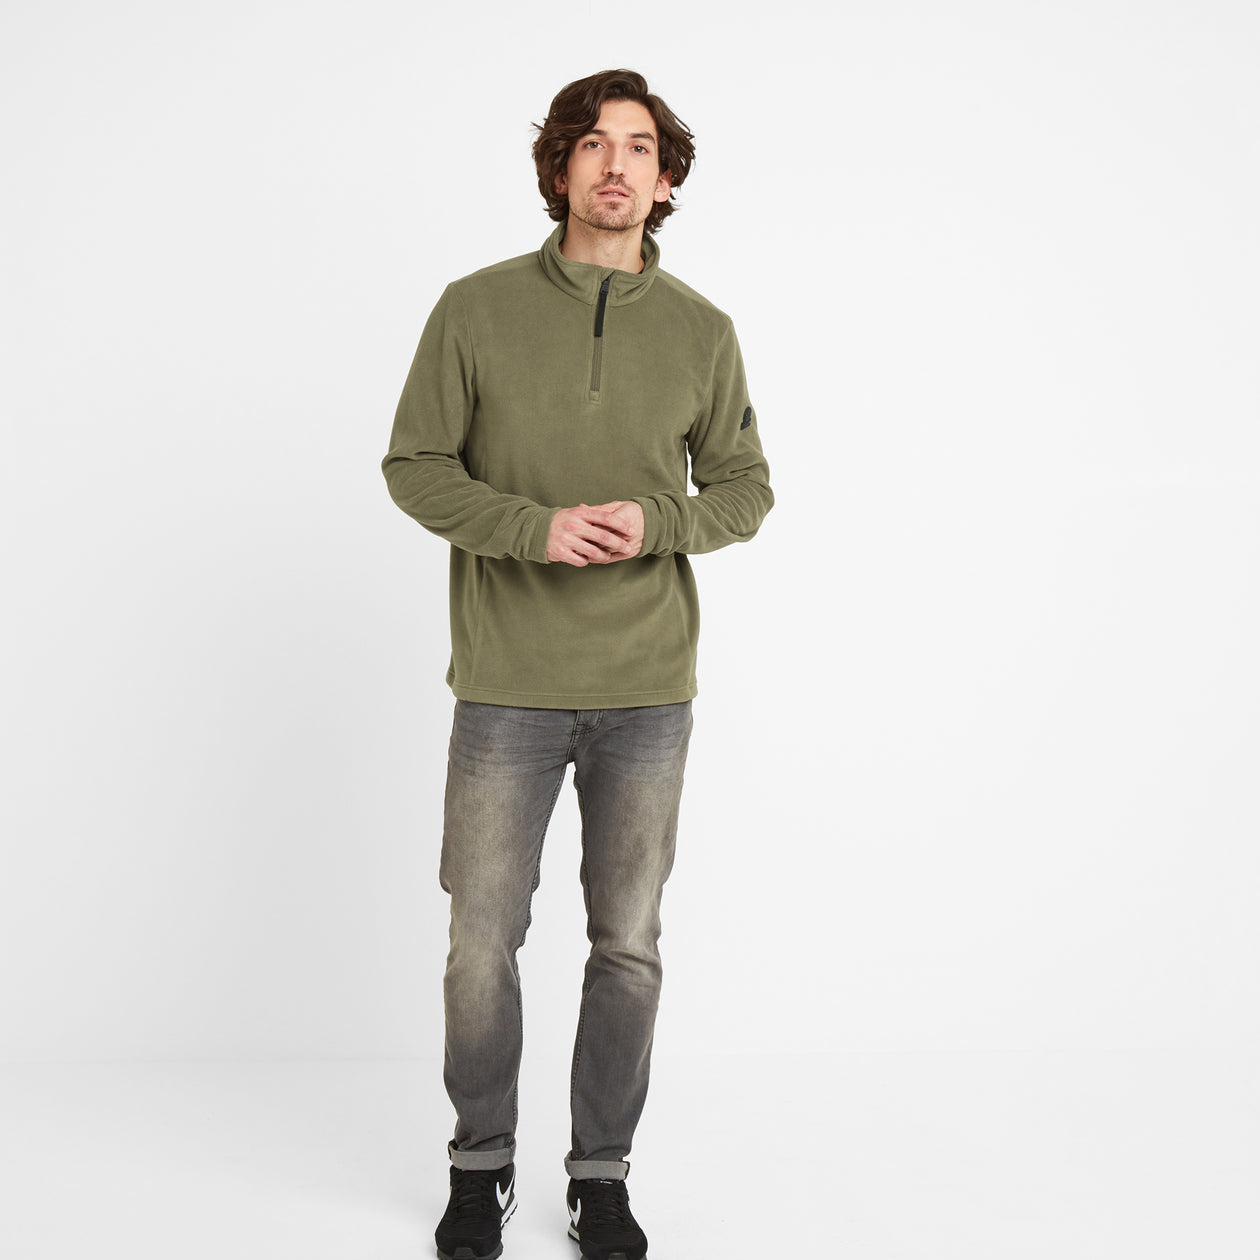 Shire Mens Fleece Zipneck - Light Khaki image 4